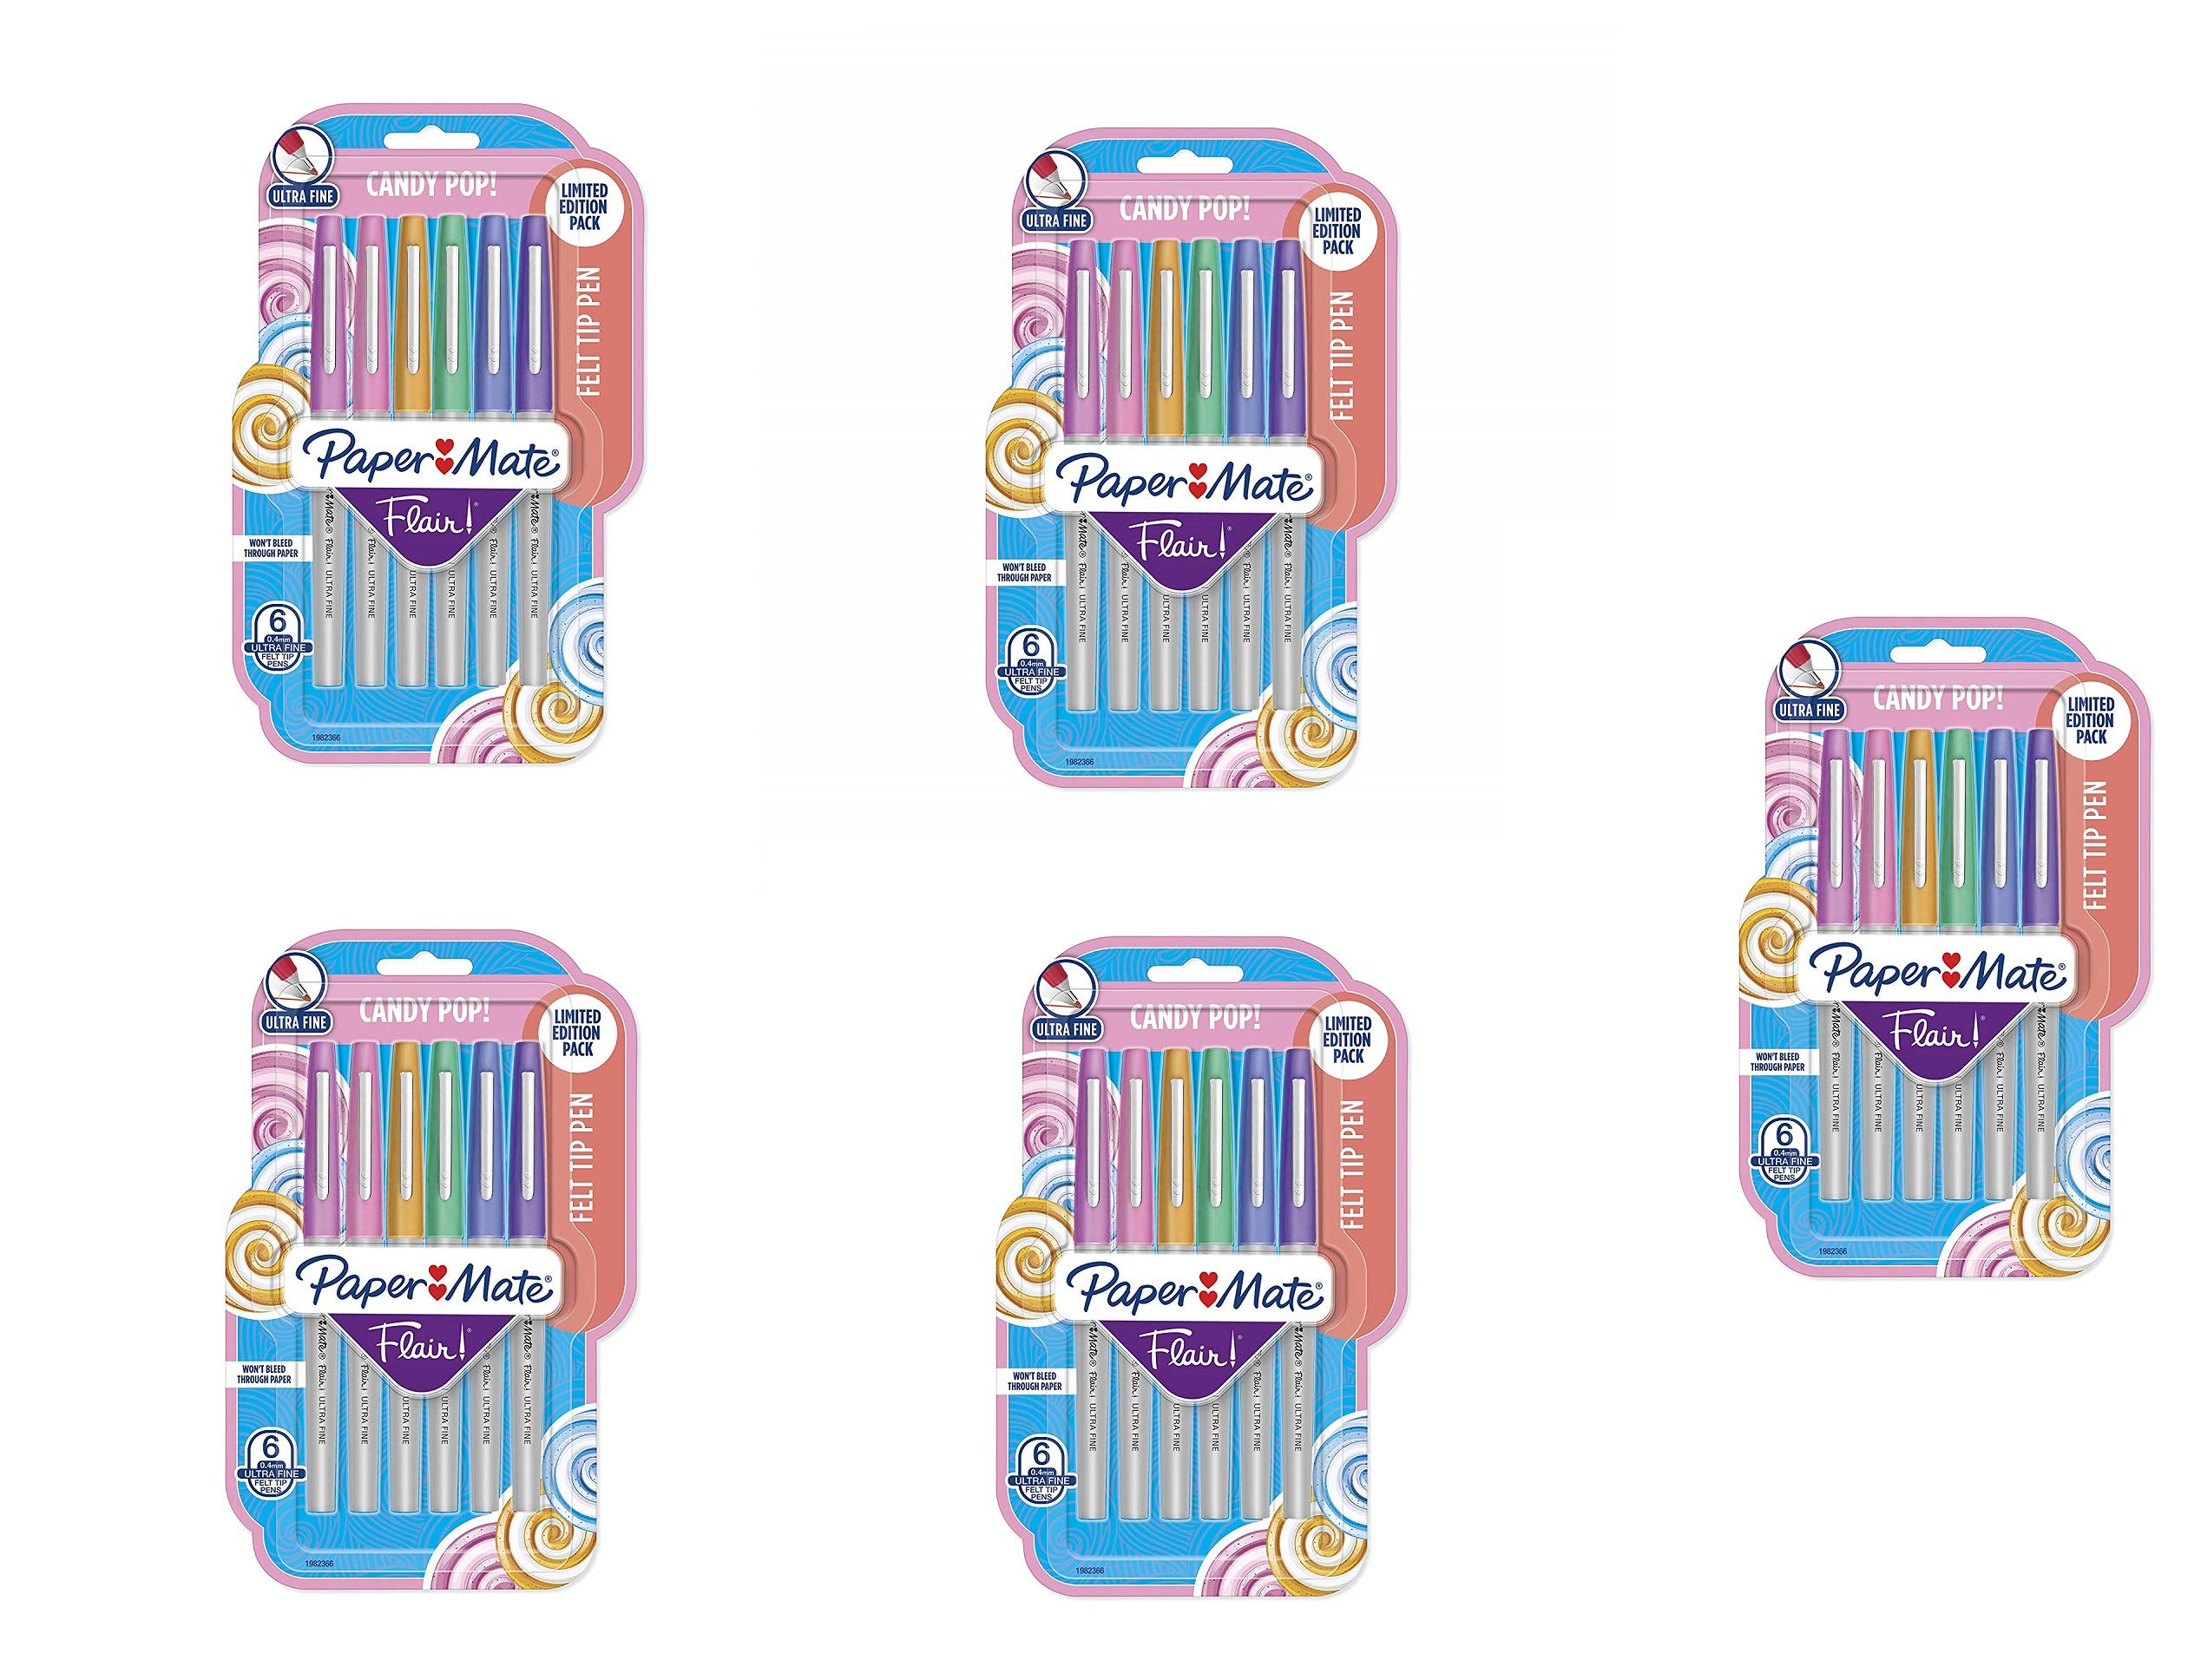 Flair Felt Tip Pens, Ultra Fine Point (0.4mm), Limited Edition Candy Pop Pack, 6 Count